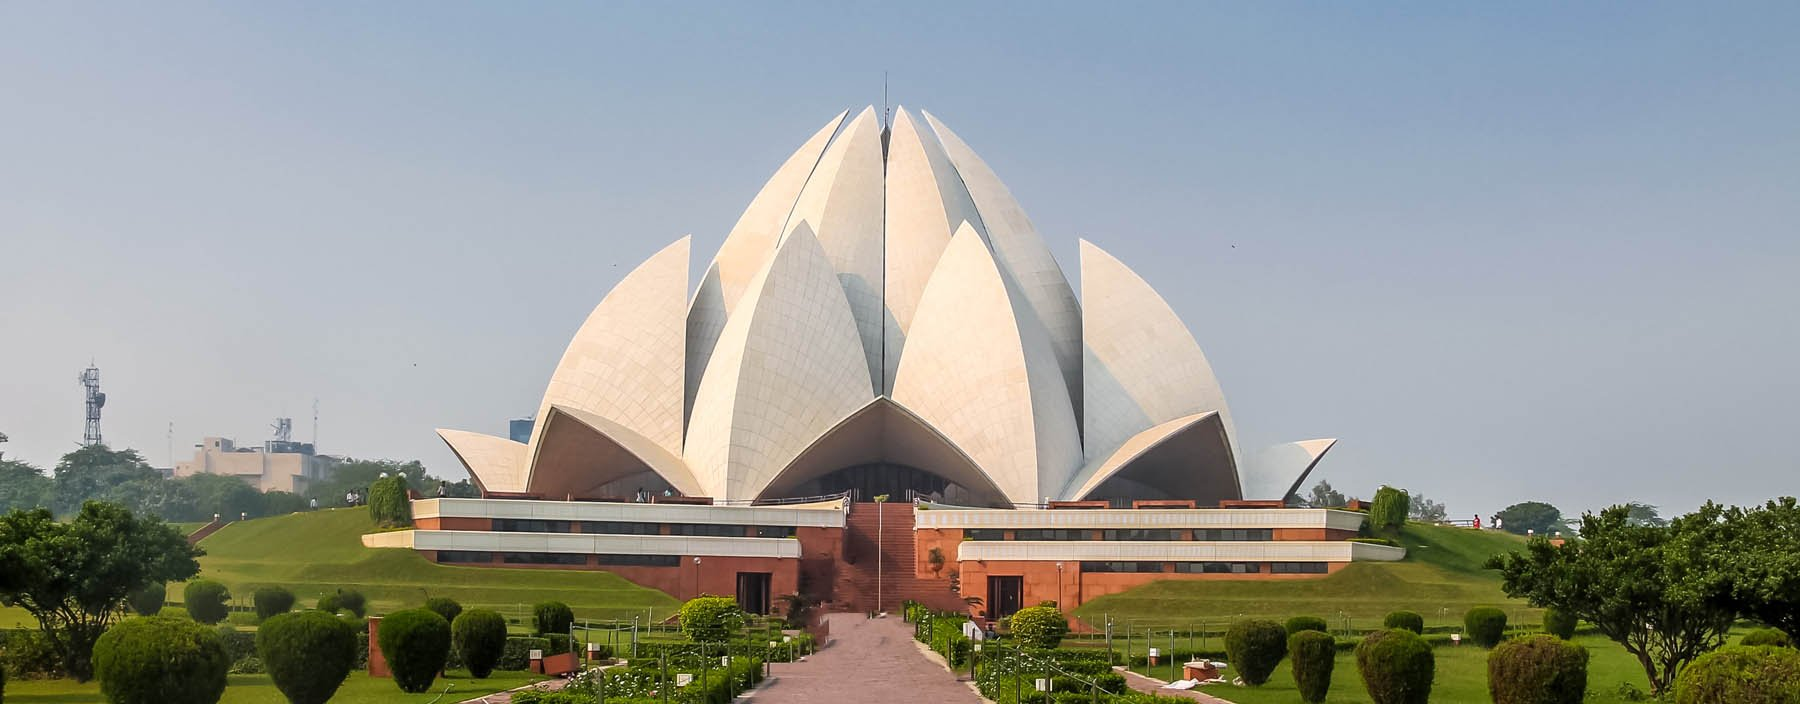 in, delhi, bahai lotus temple.jpg